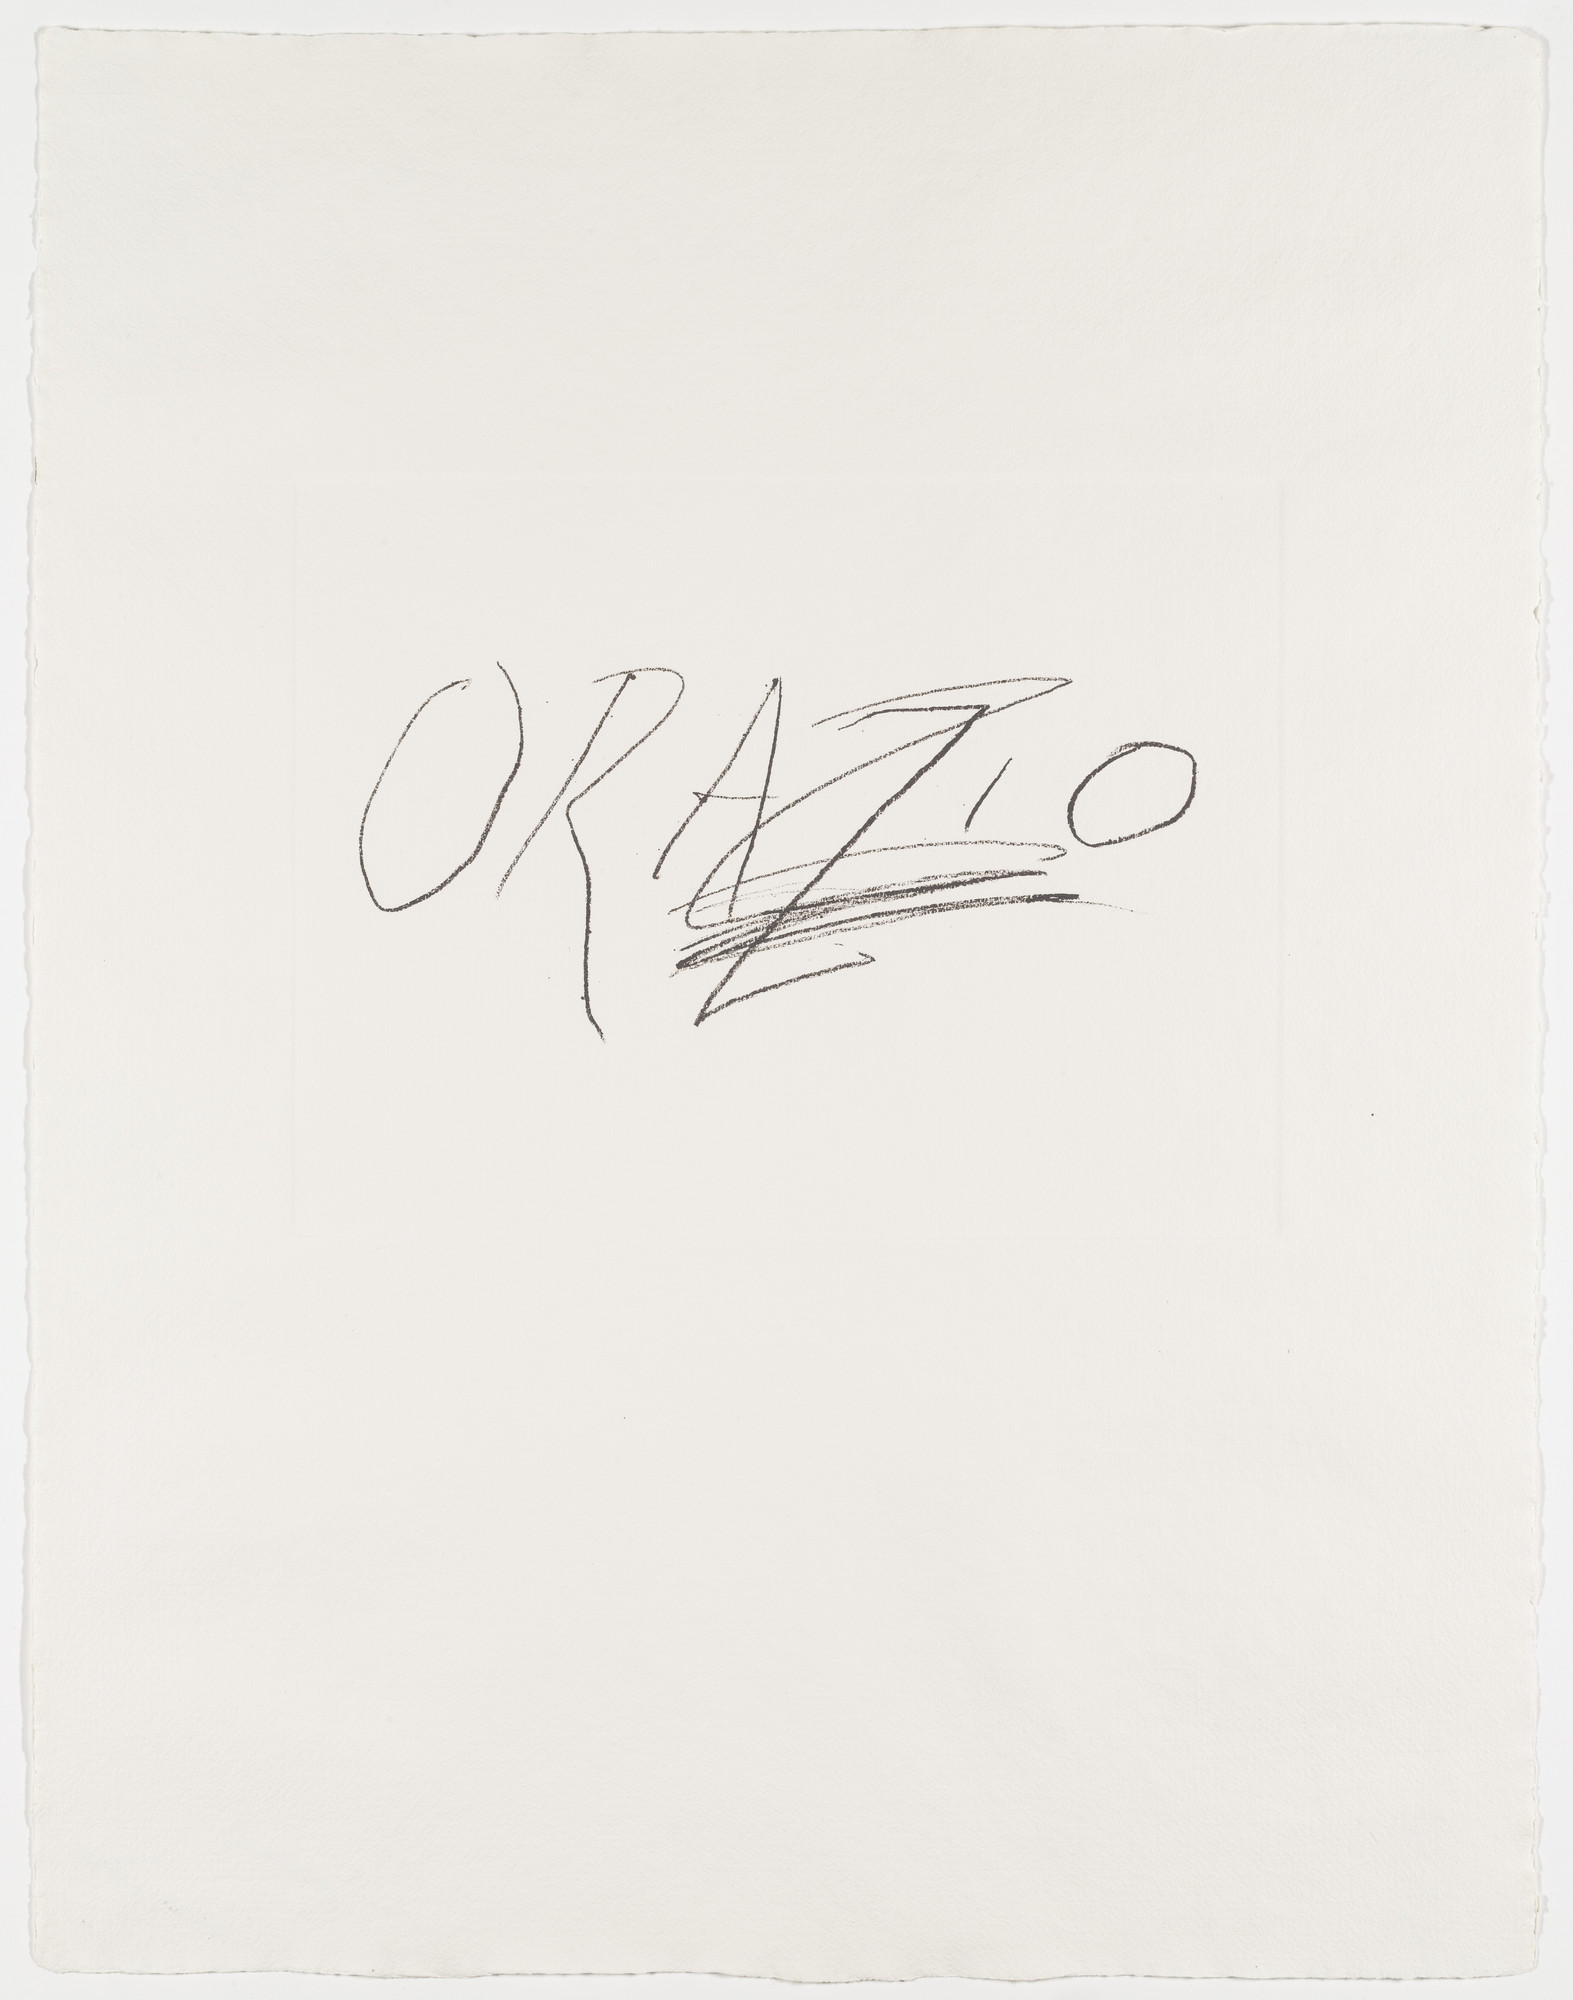 Cy Twombly, Propyläen-Verlag, Berlin. Orazio from the portfolio Six Latin Writers and Poets. 1975-1976